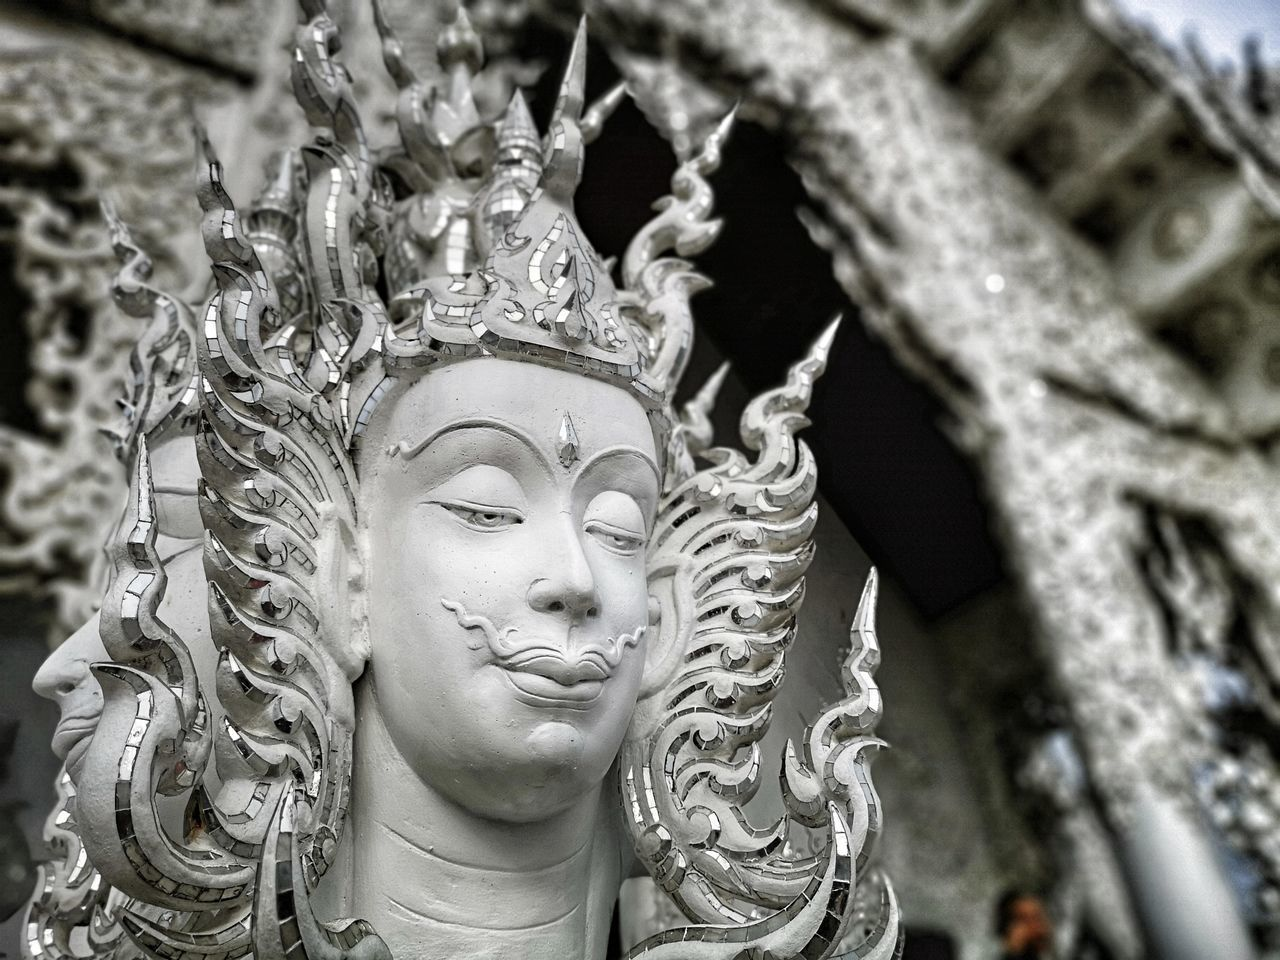 sculpture, human representation, art and craft, statue, representation, religion, belief, spirituality, creativity, male likeness, close-up, focus on foreground, architecture, no people, built structure, place of worship, female likeness, building, craft, day, ornate, idol